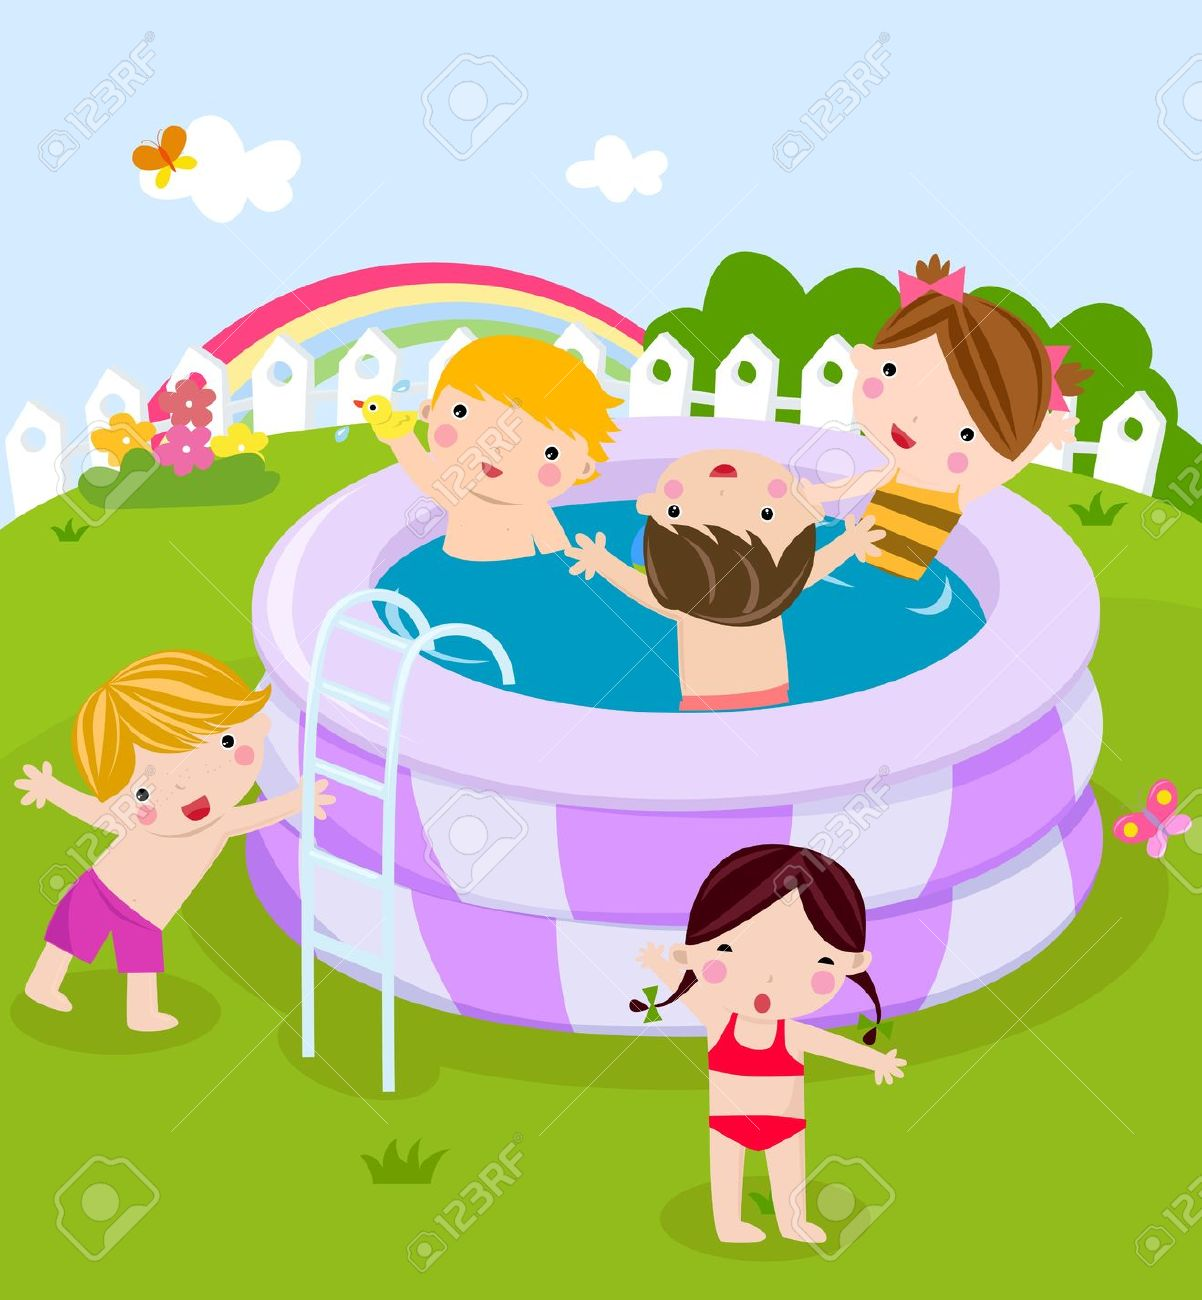 Kids Having Fun In The Pool Royalty Free Cliparts, Vectors, And.